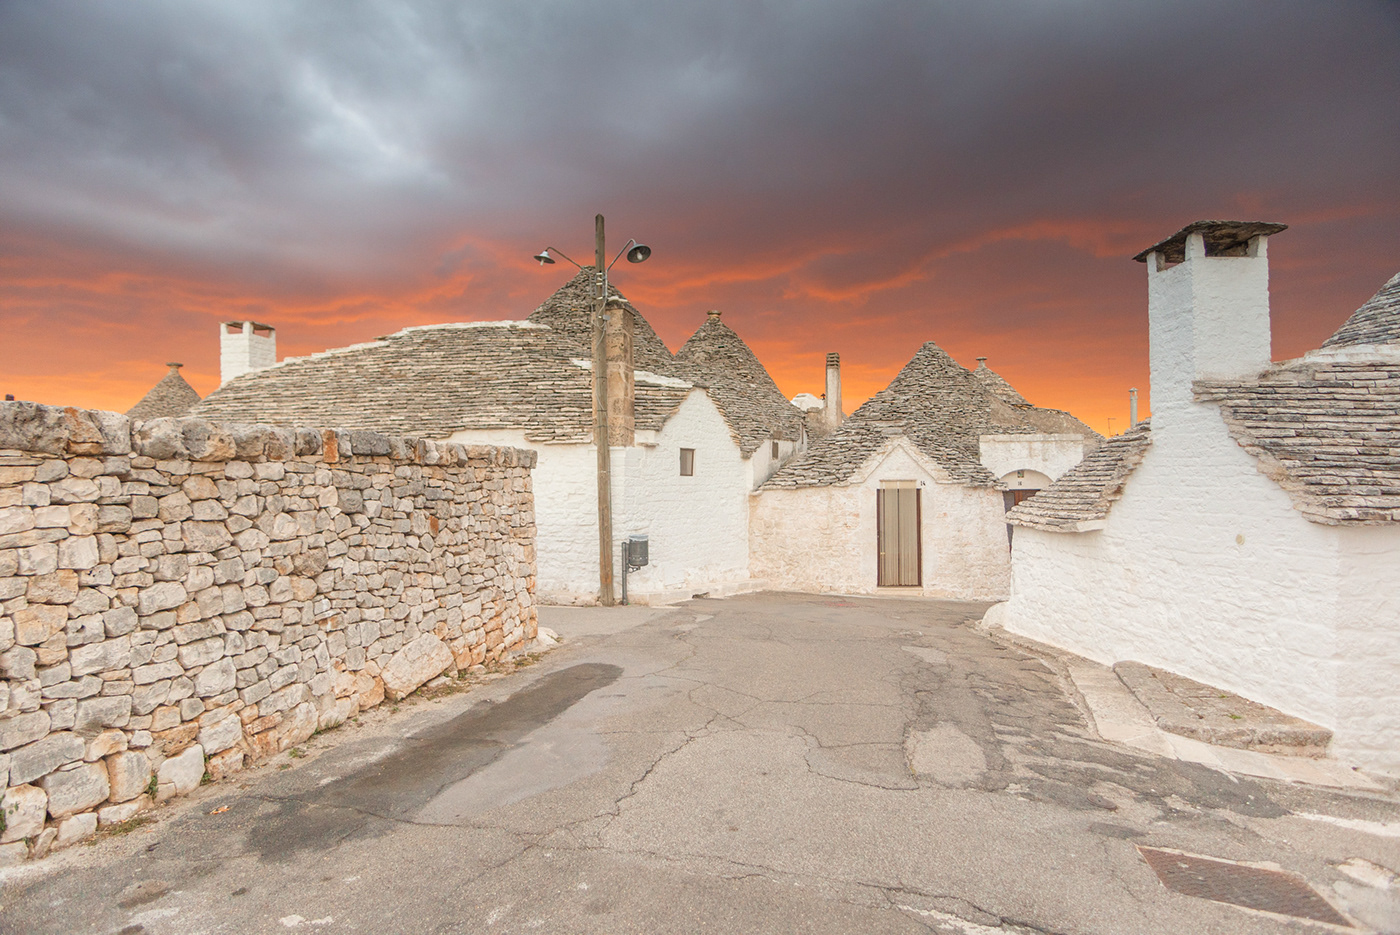 architecture Photography  journalism   culture Alberobello streetphotography reportage Italy hamlet Street